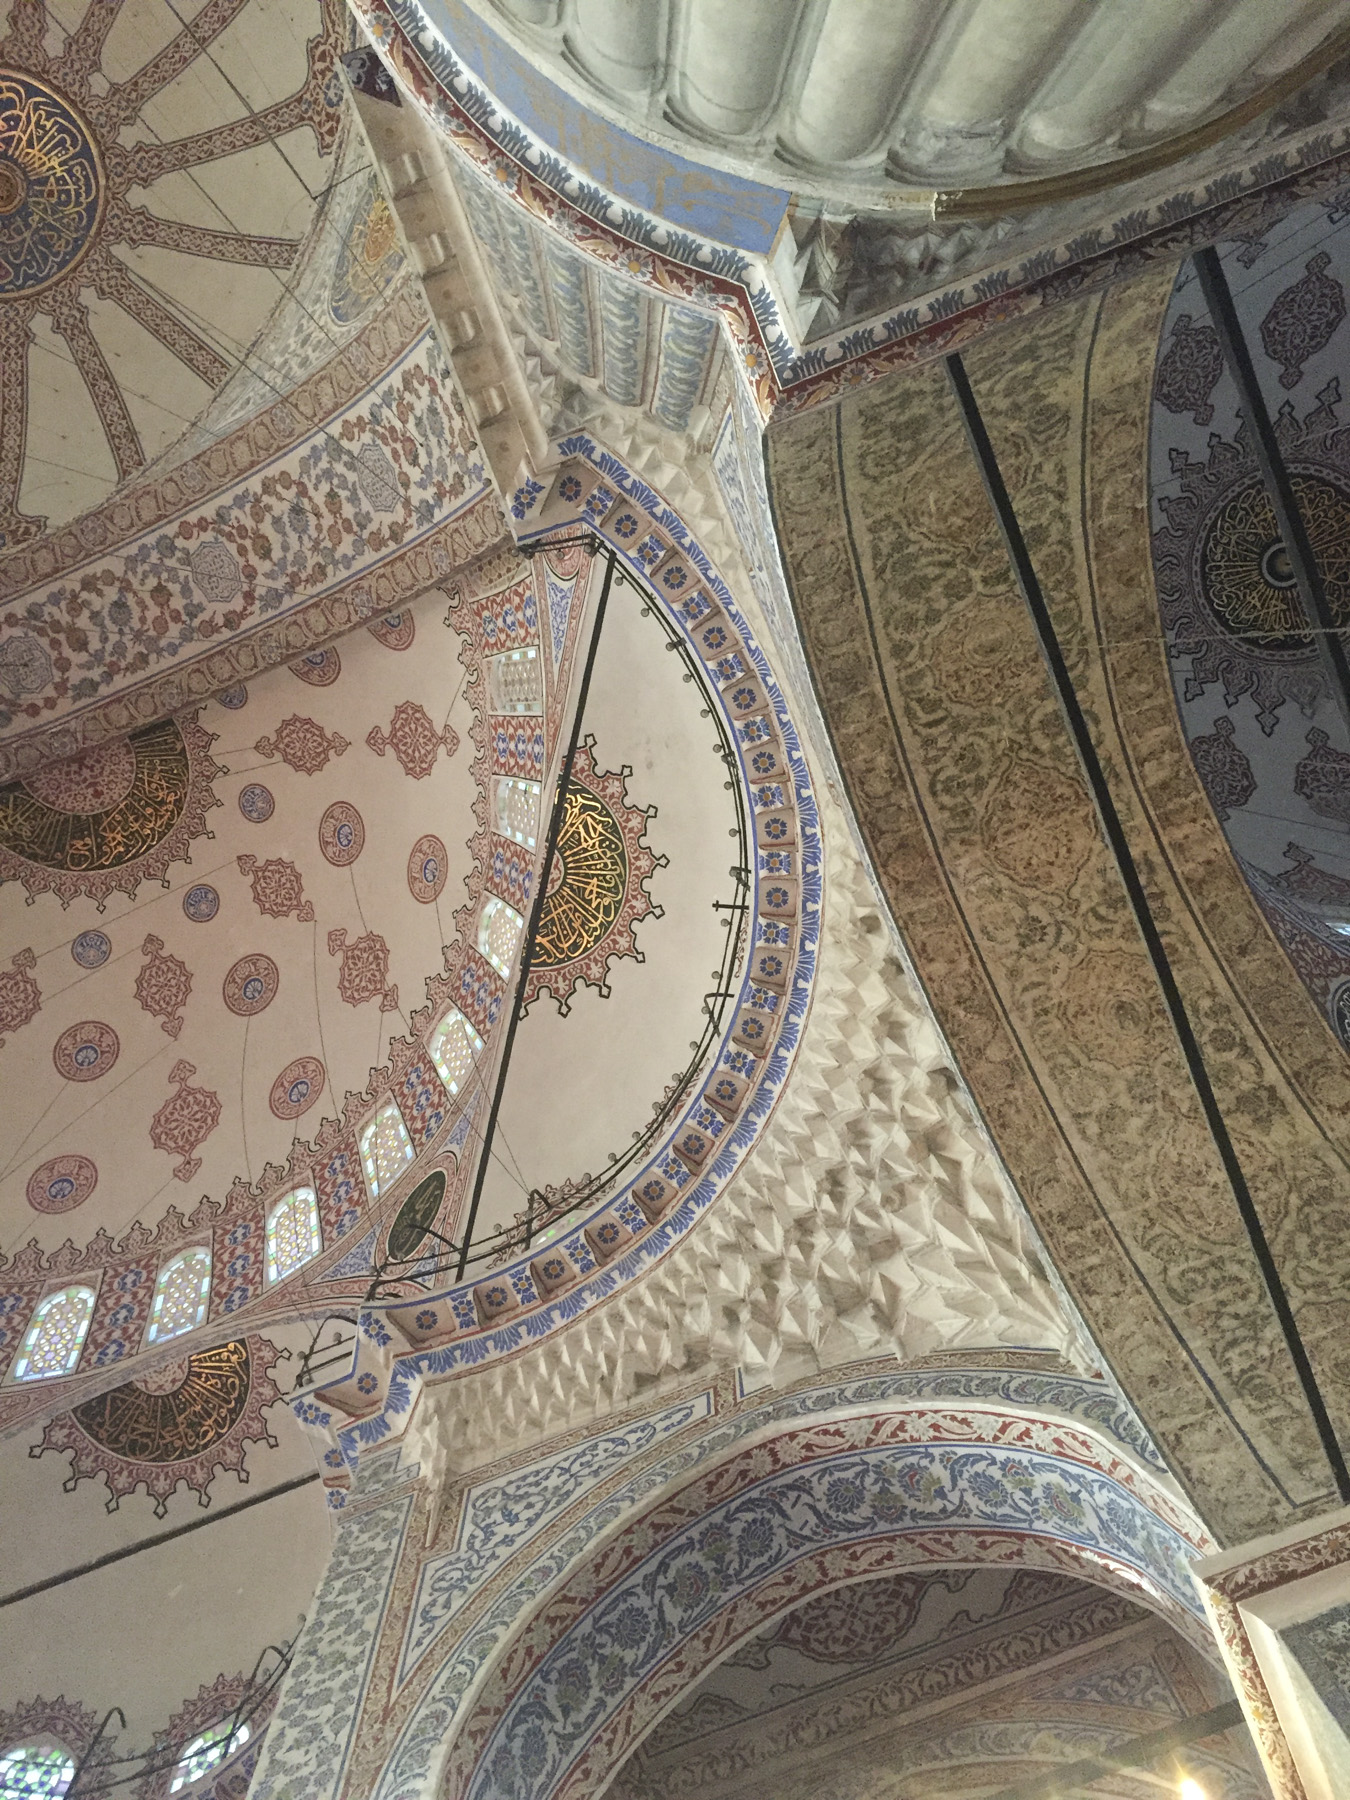 try wonder inspo istanbul turkey blue mosque ceiling